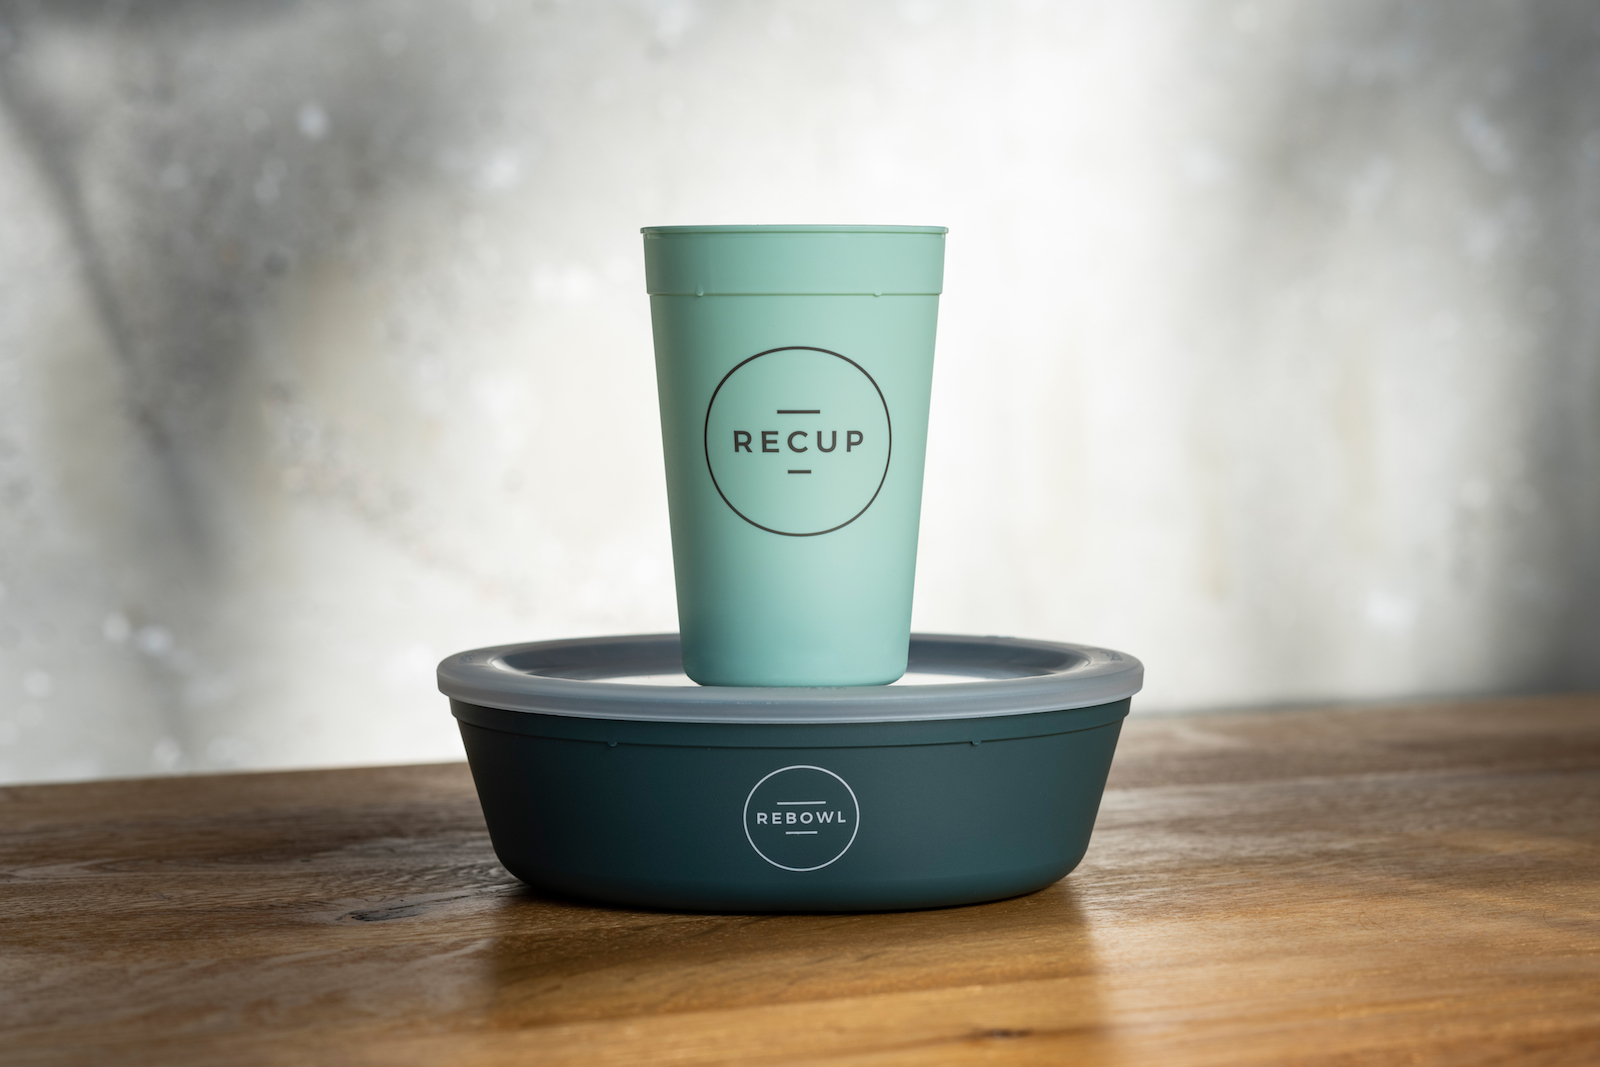 a green cup on top of a green bowl. Both are labeled ReCUP